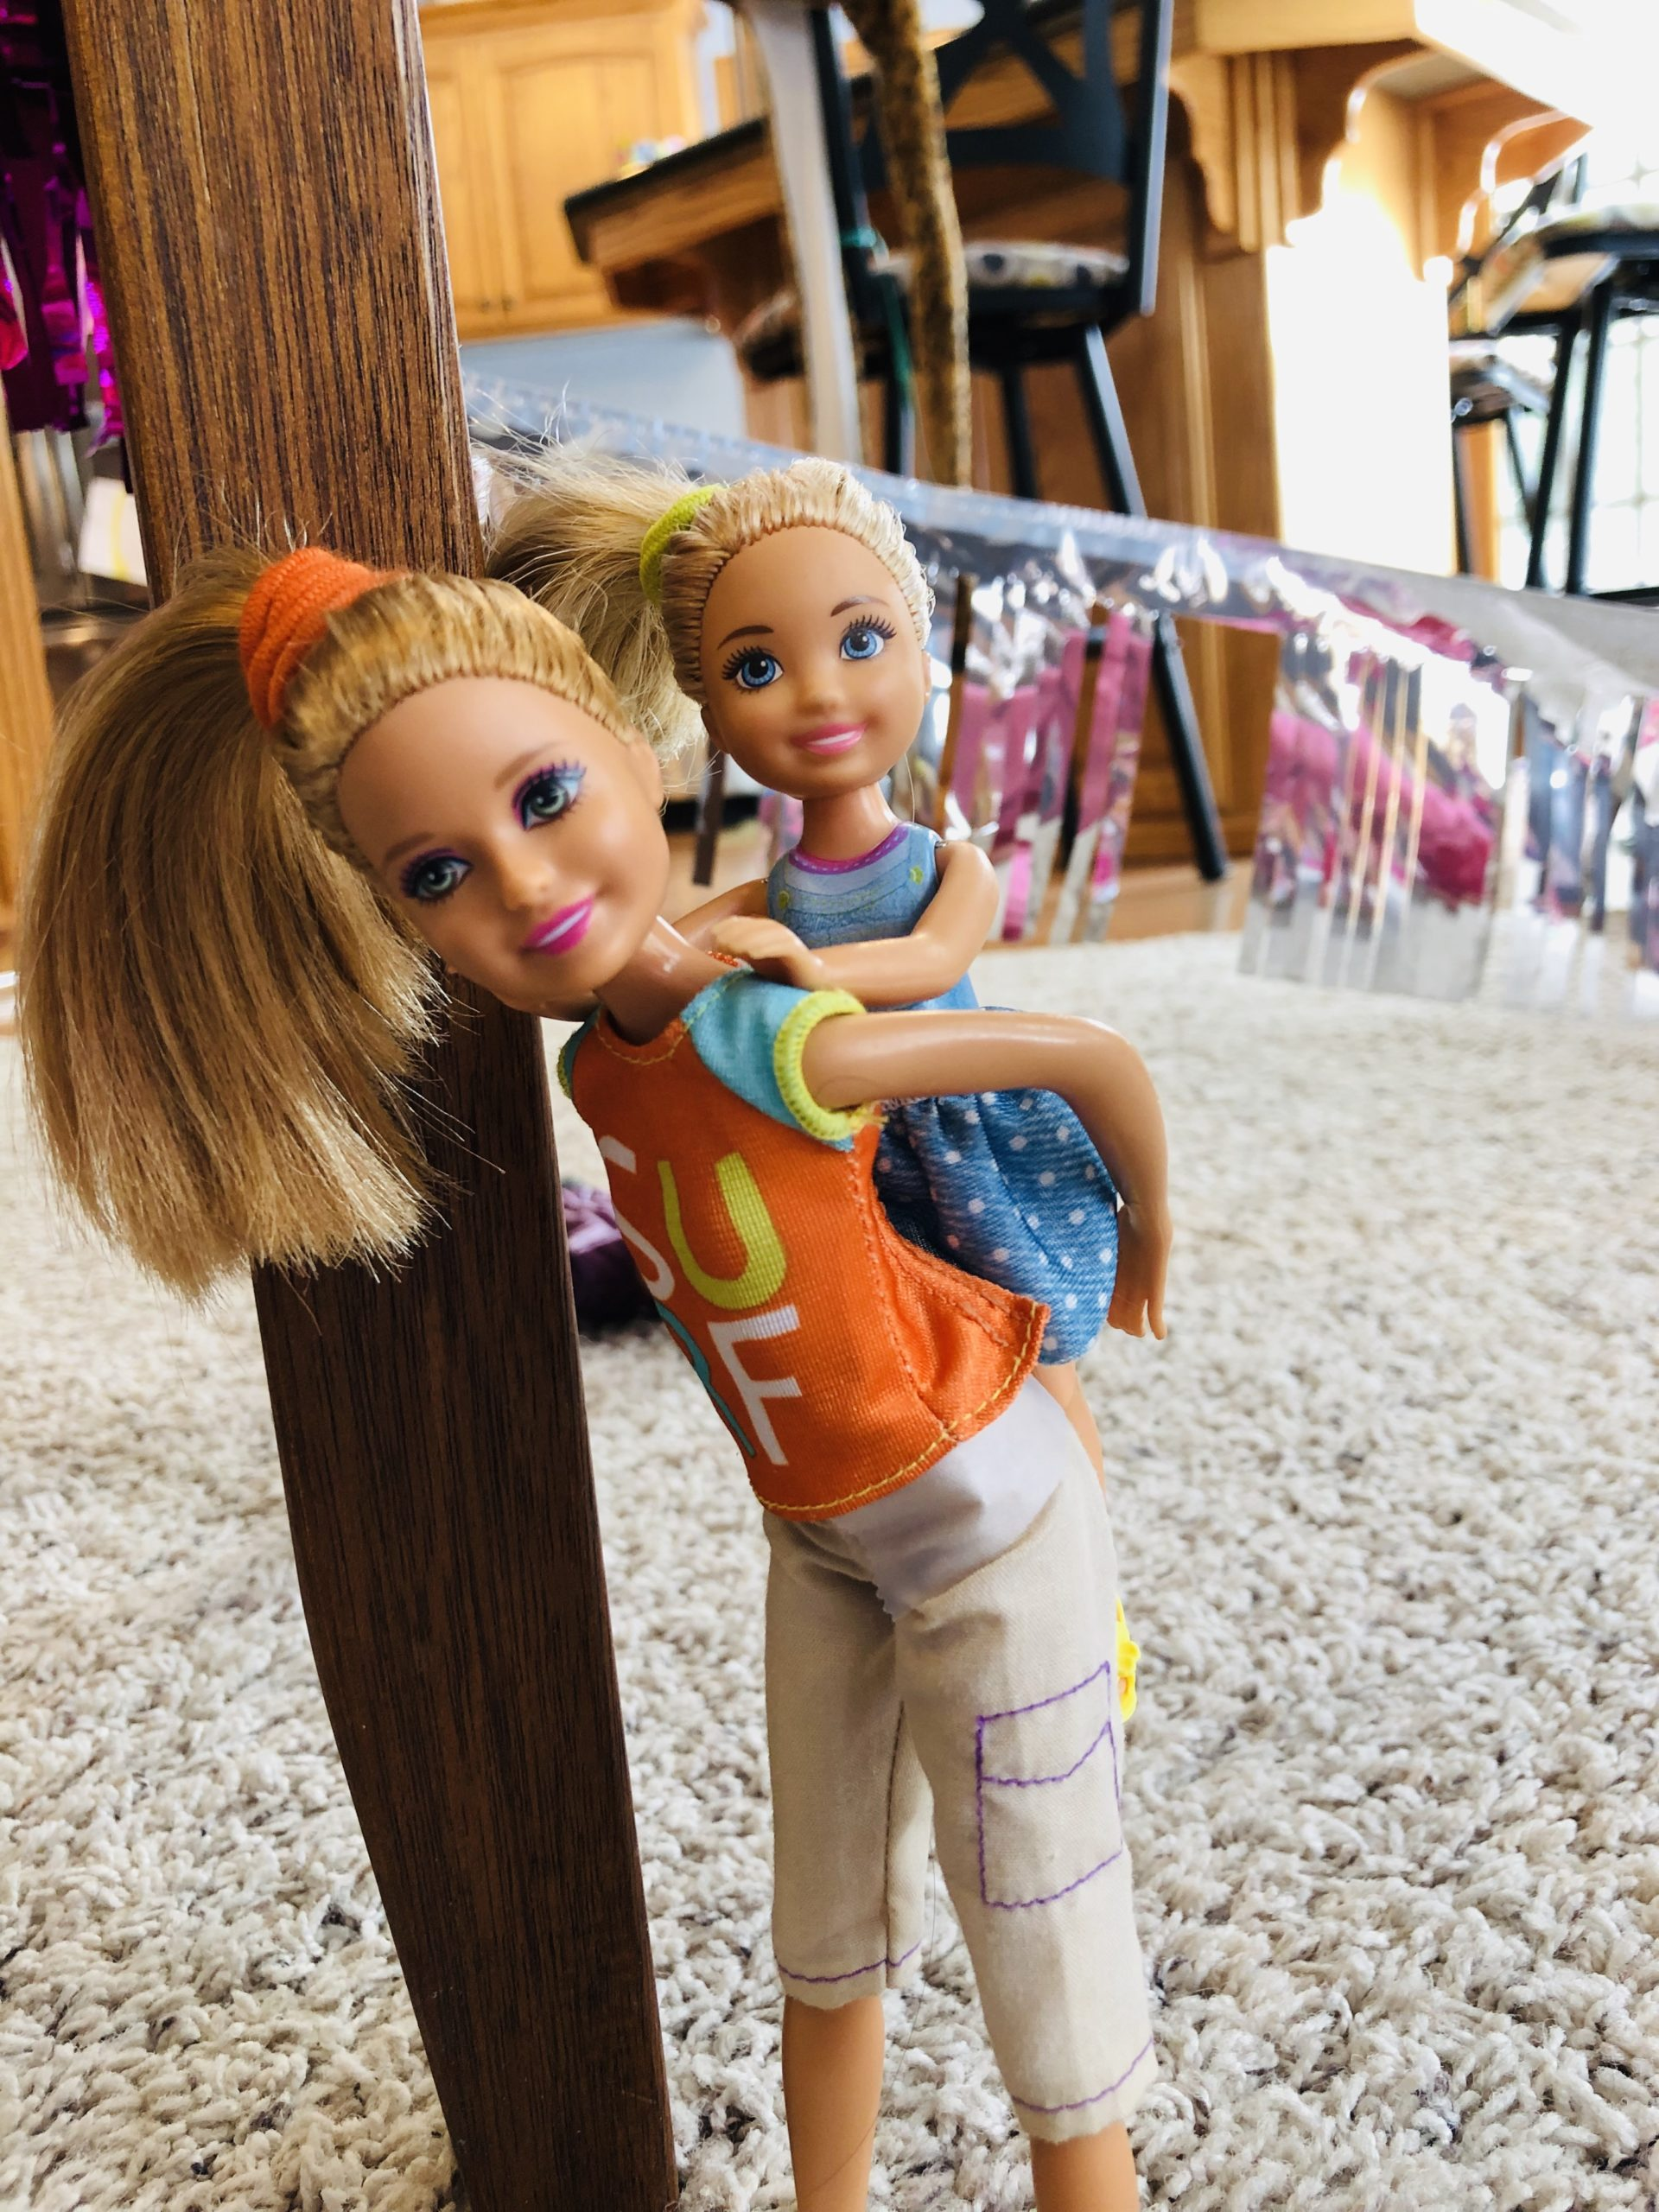 A Stacie Doll (Charlotte) is giving a piggy back ride to Brynn, a Chelsea Doll for a Barbie Doll Story